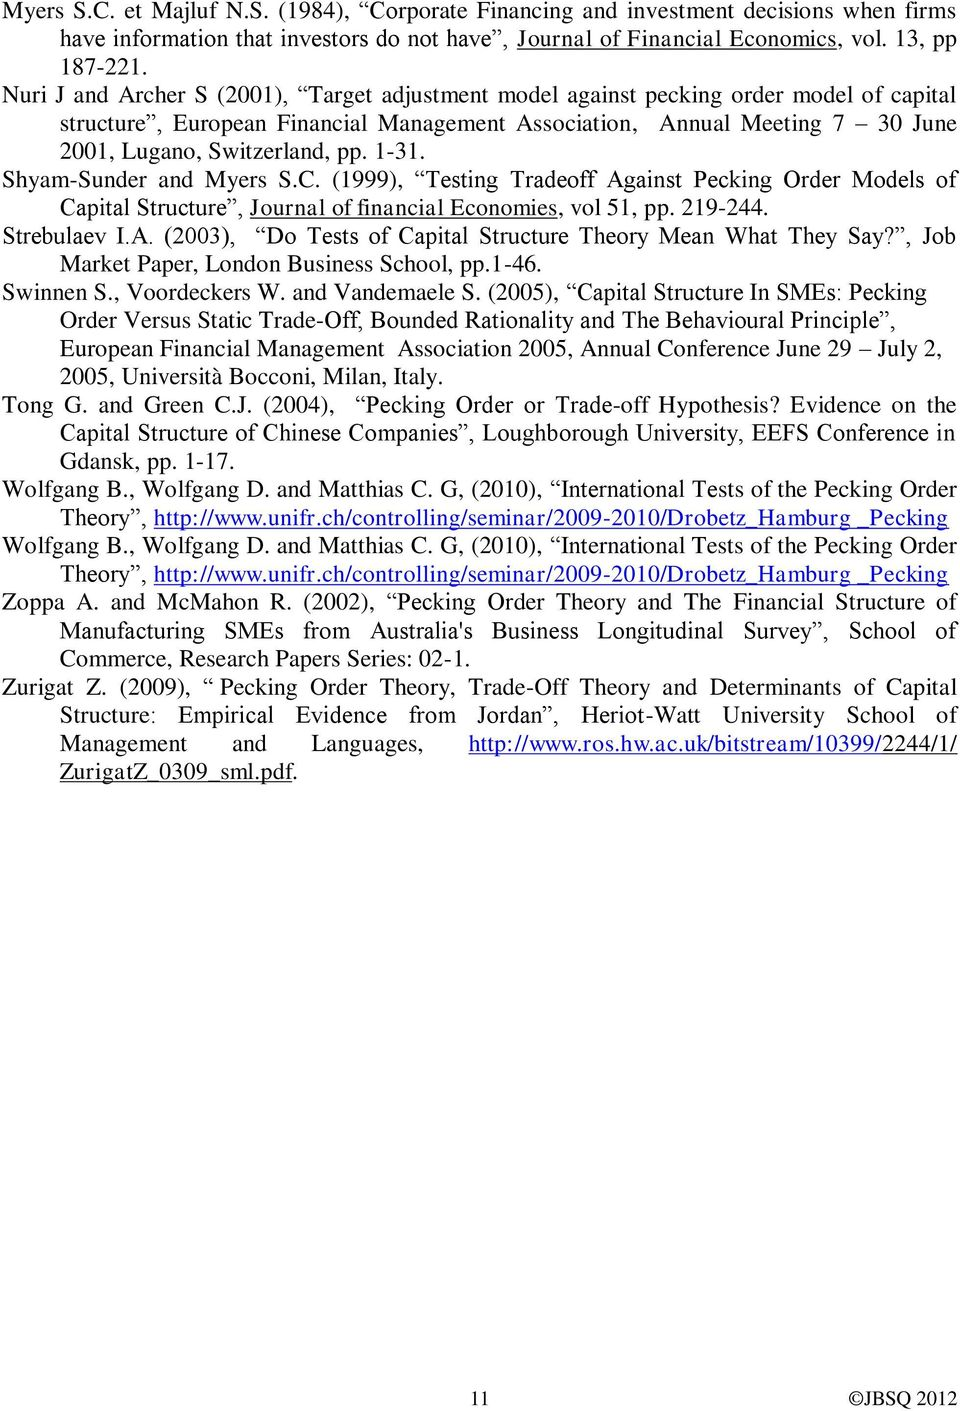 testing static tradeoff against pecking order models of capital structure